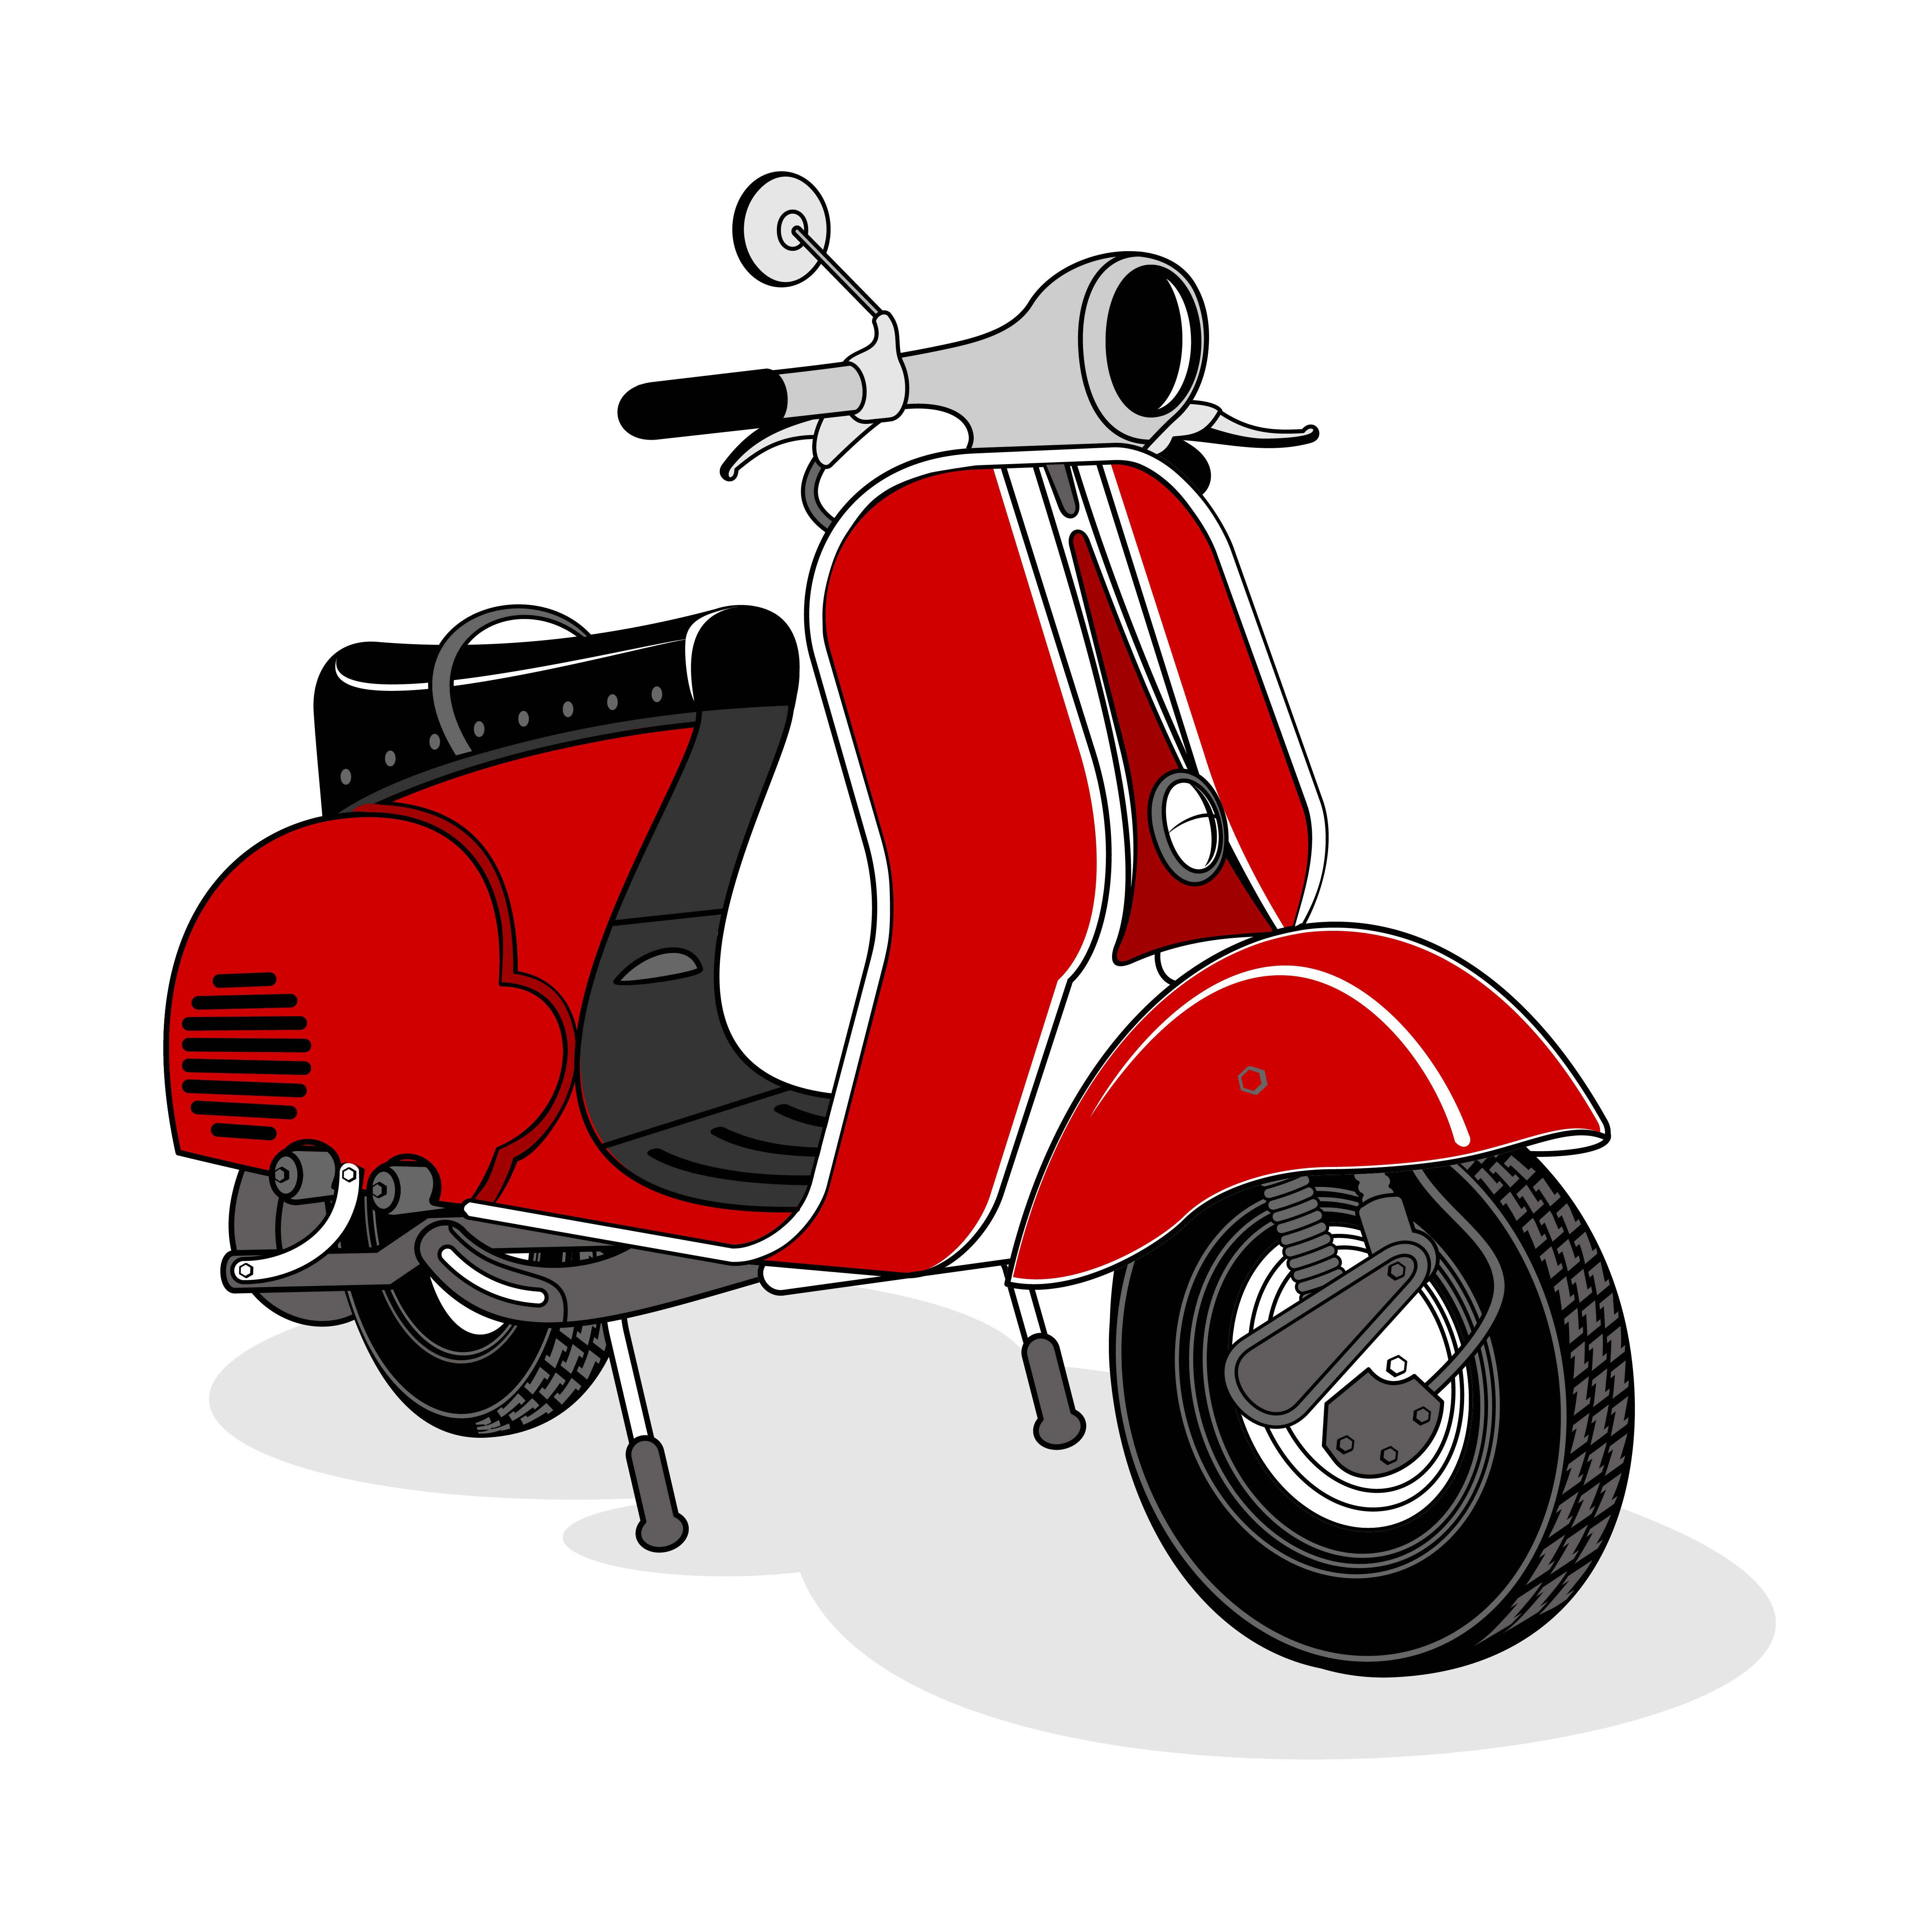 We Cover All Things Vespa Get An Insurance Quote Today 520 917 5295